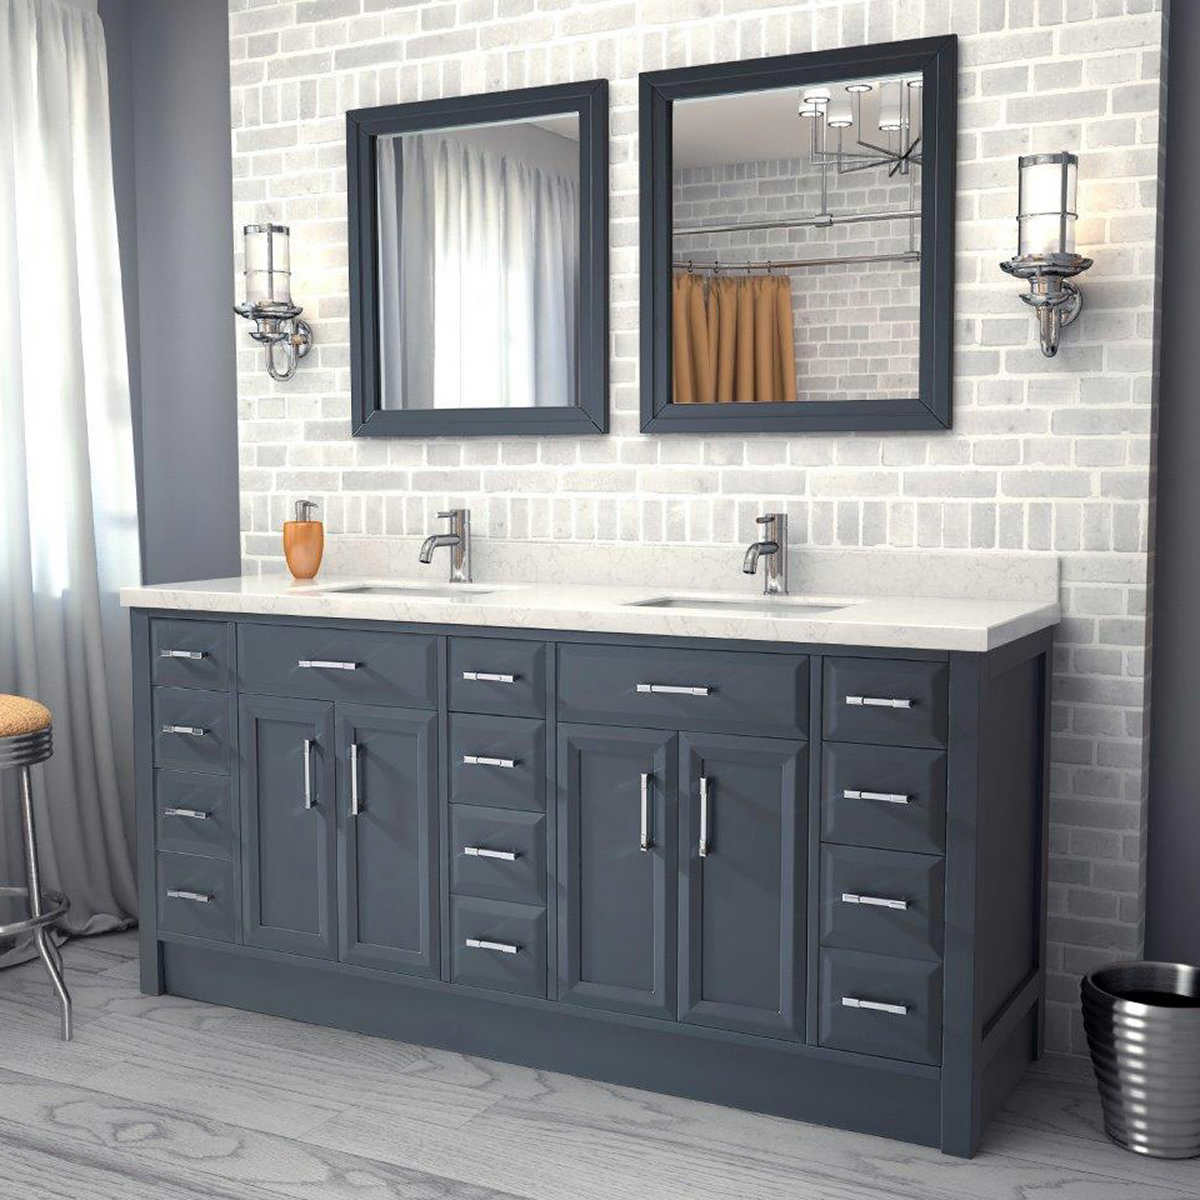 Step Charcoal Grey Vanities